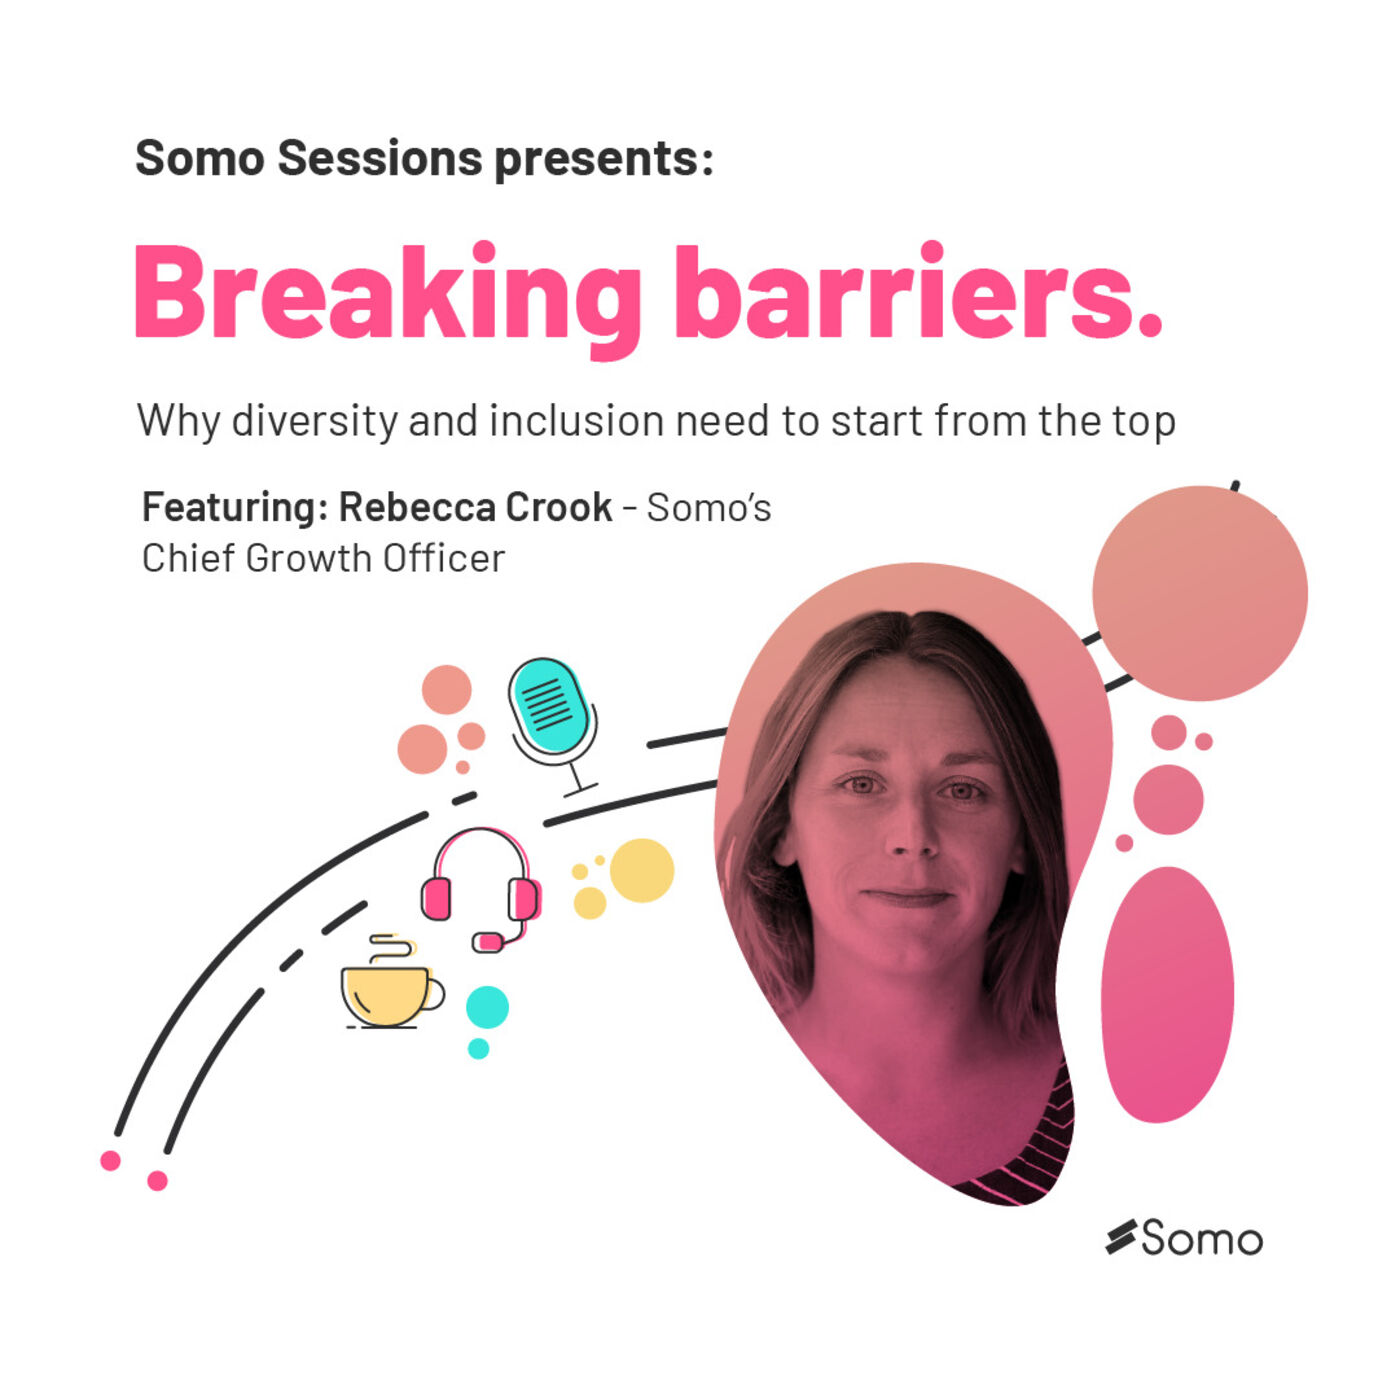 7. Breaking barriers: why diversity and inclusion need to start from the top